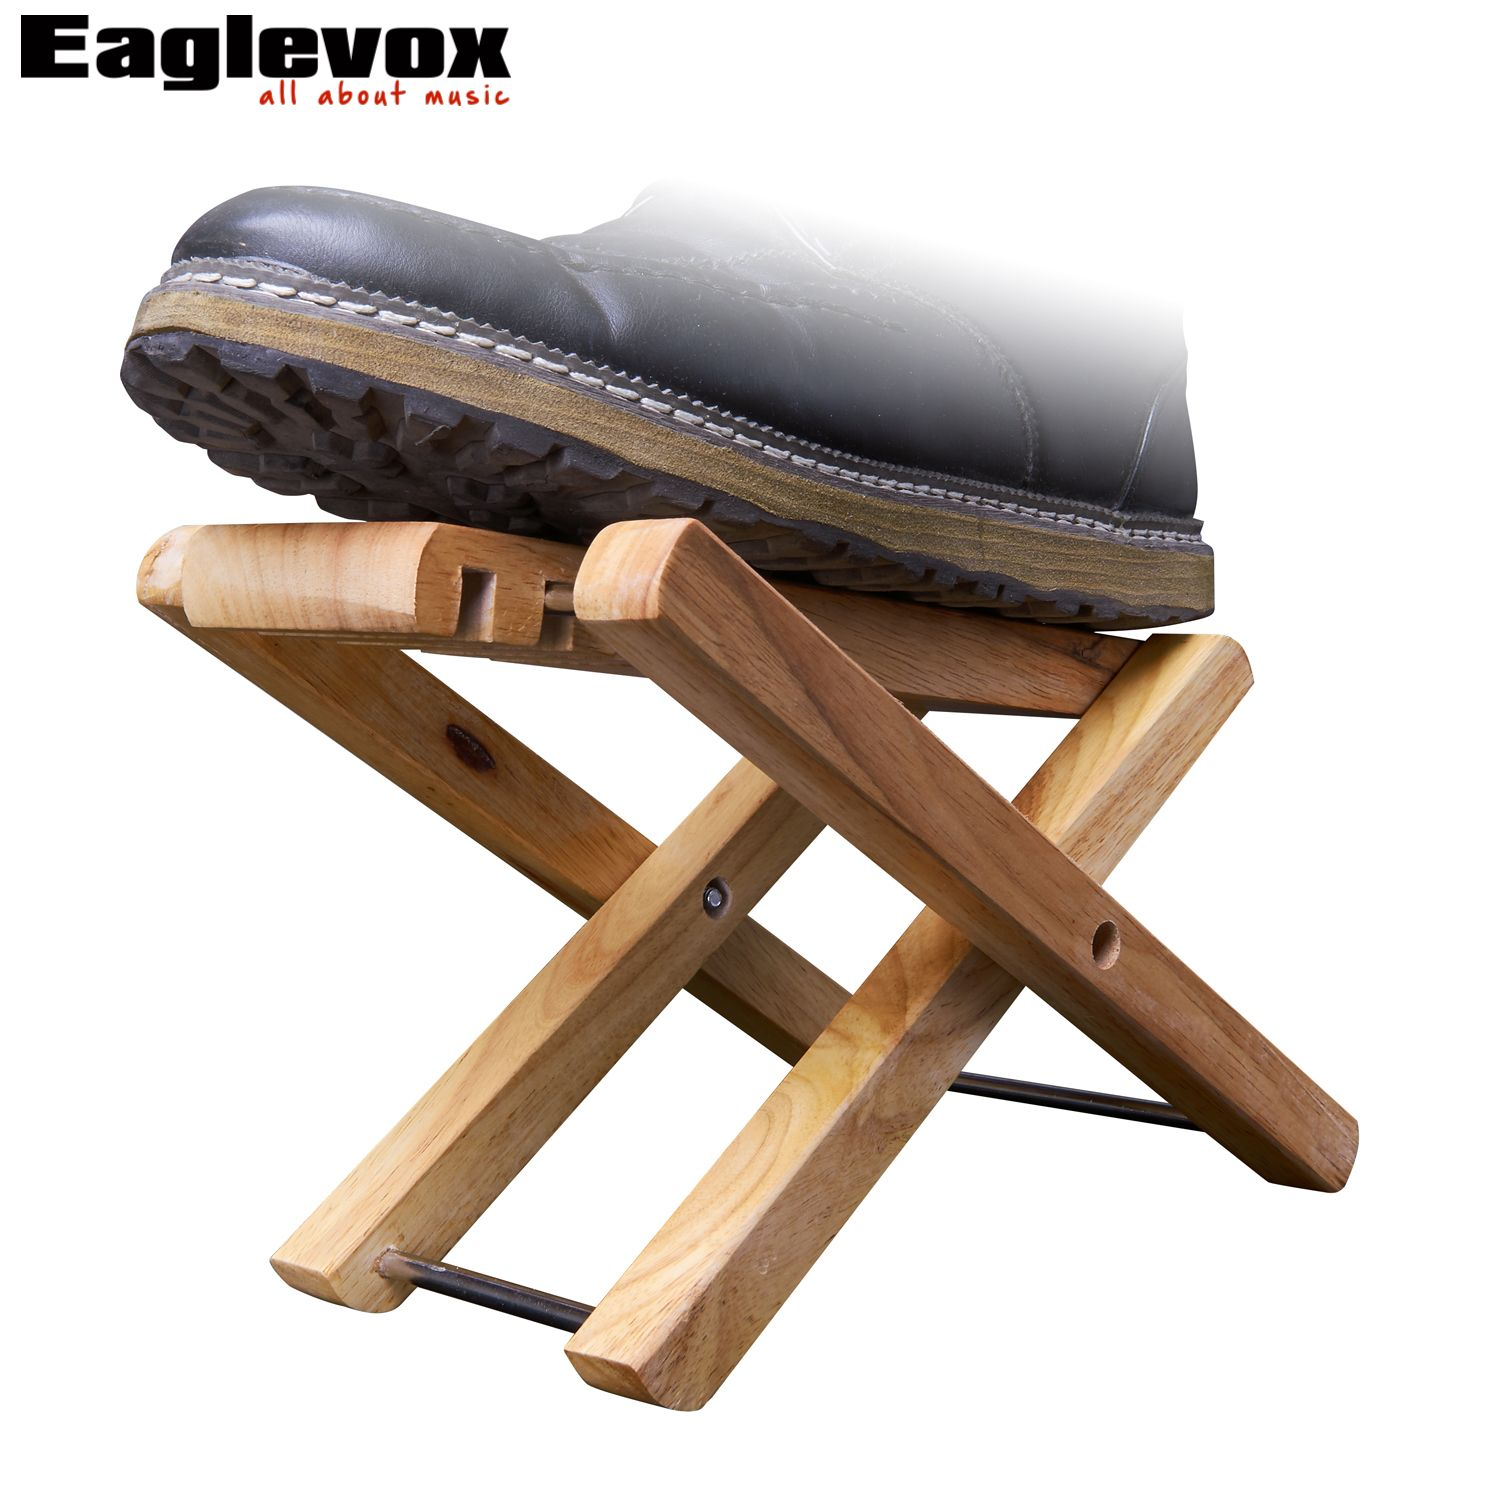 Guitar Footrest Wood Foldable Foot Rest Stand 3 Easily Adjusted Height Positions Am Wp10